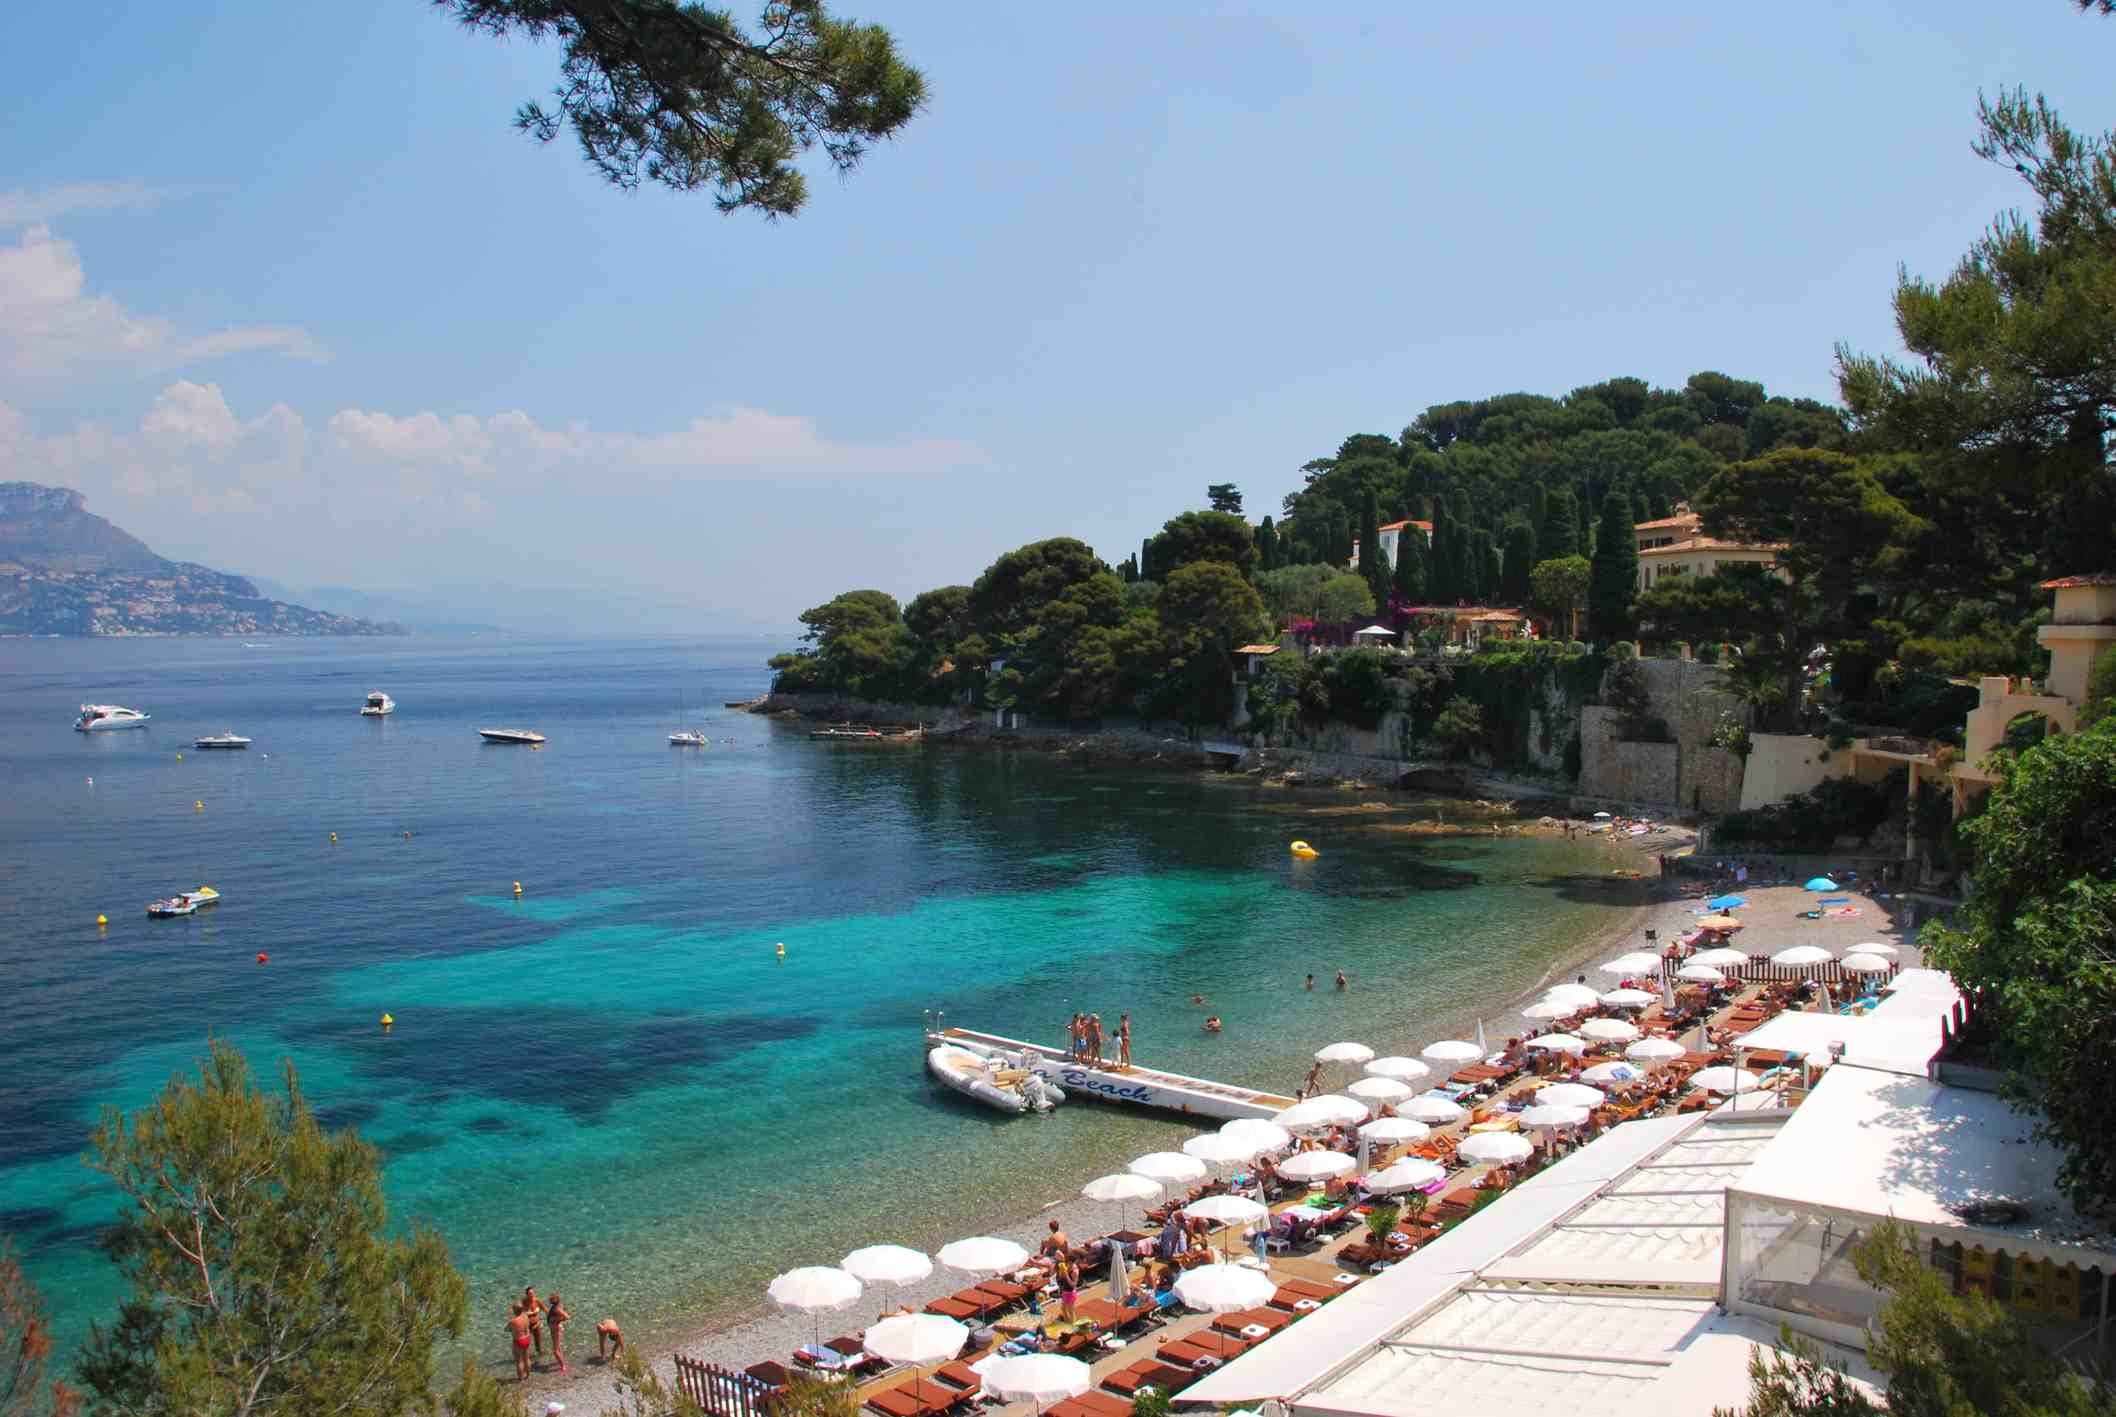 Paloma beach and beach club in the south of france